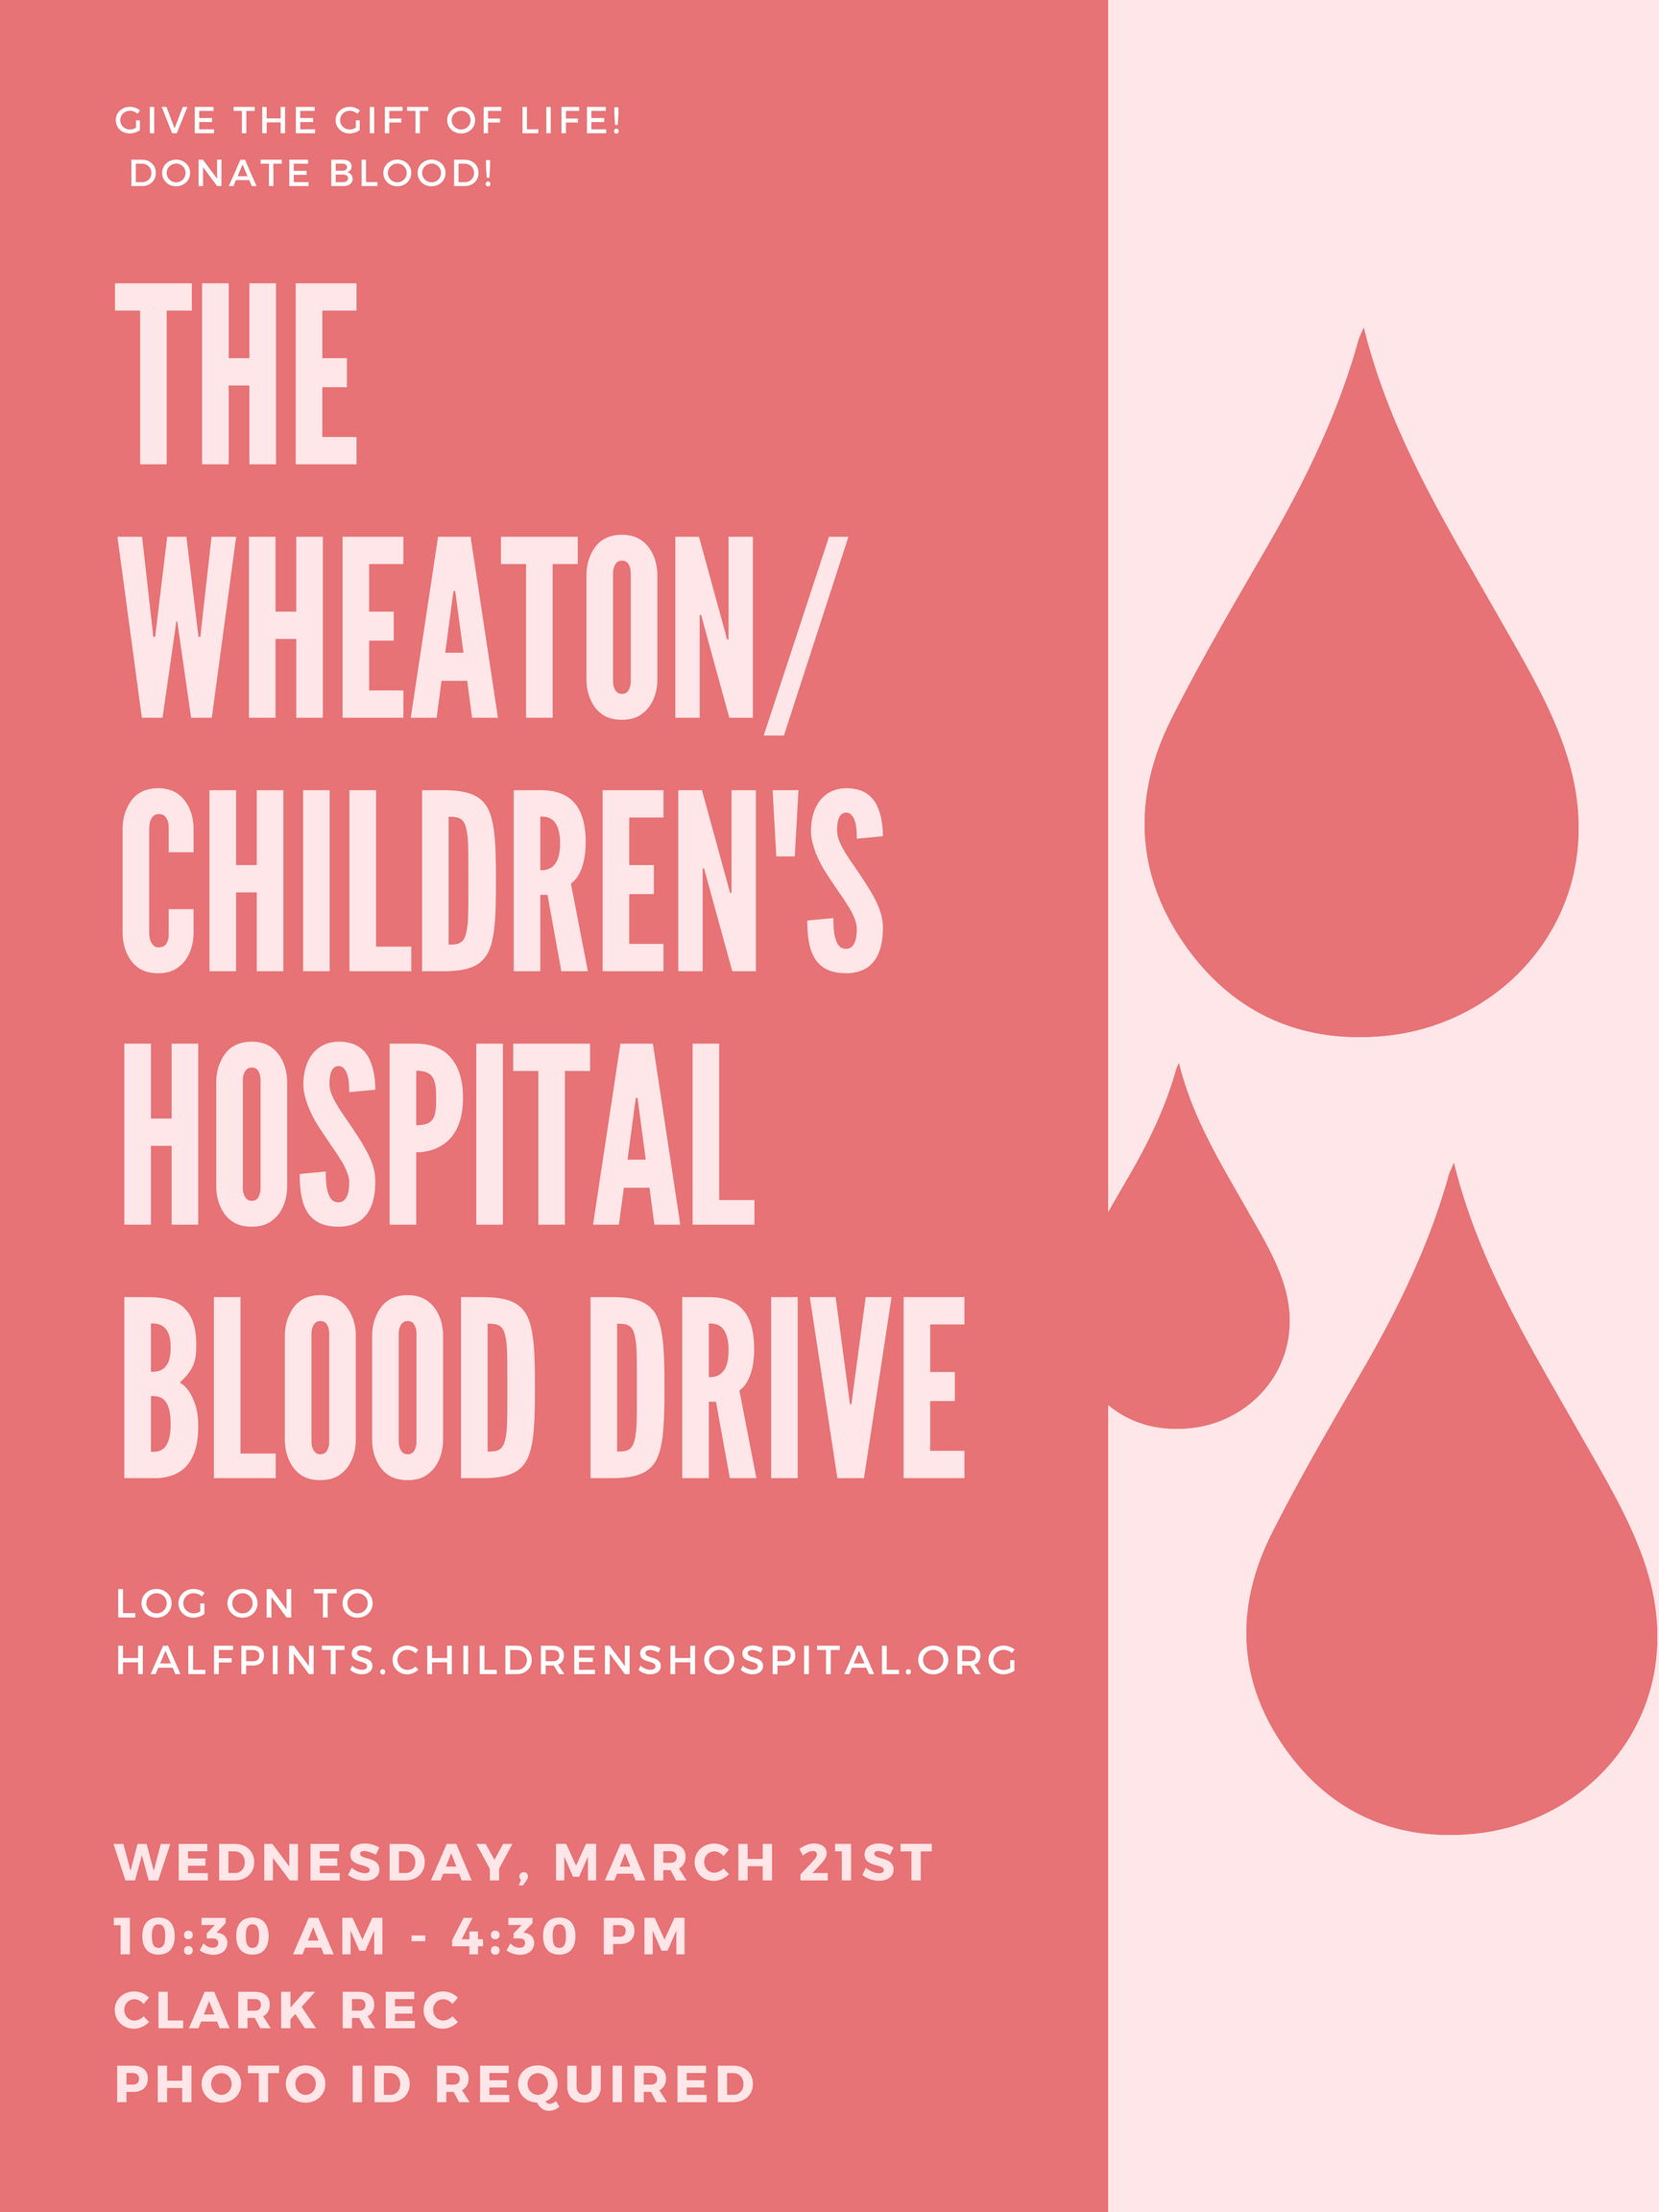 March 21st Blood Drive